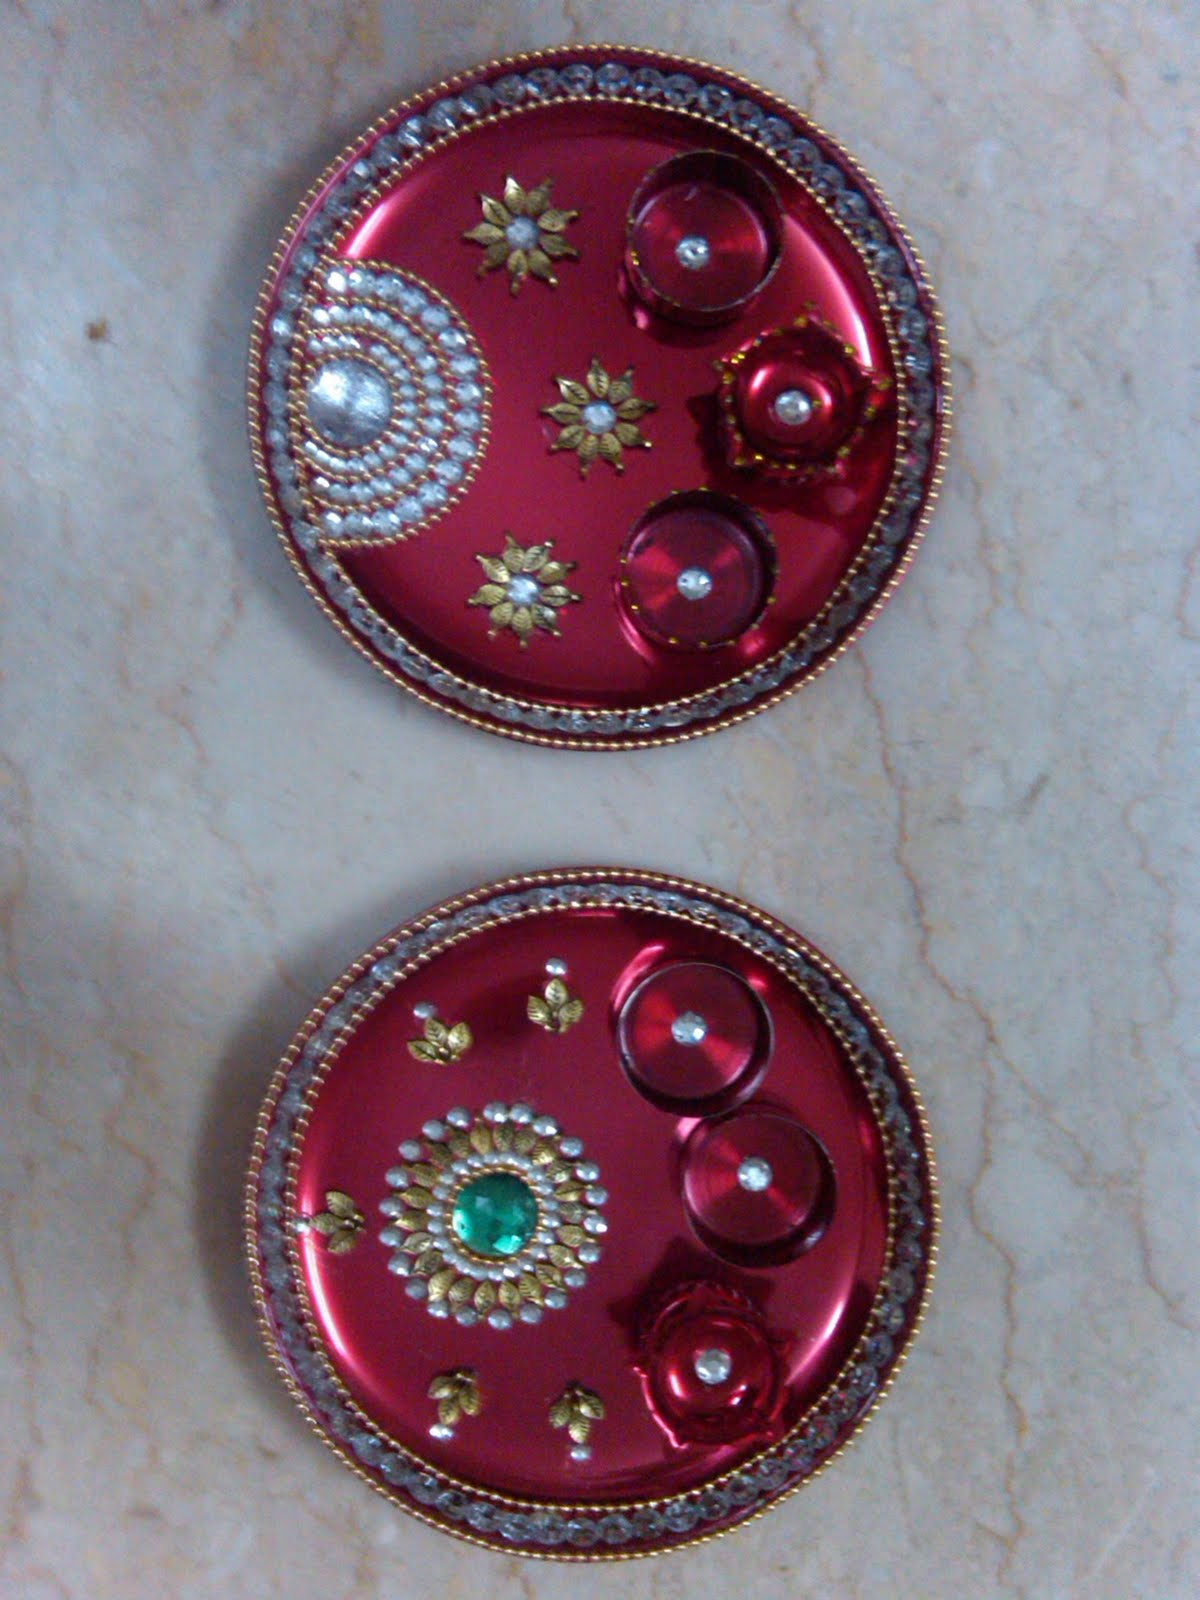 Ranjana arts www ranjanaarts com raksha bandhan aarti for Aarti thali decoration images